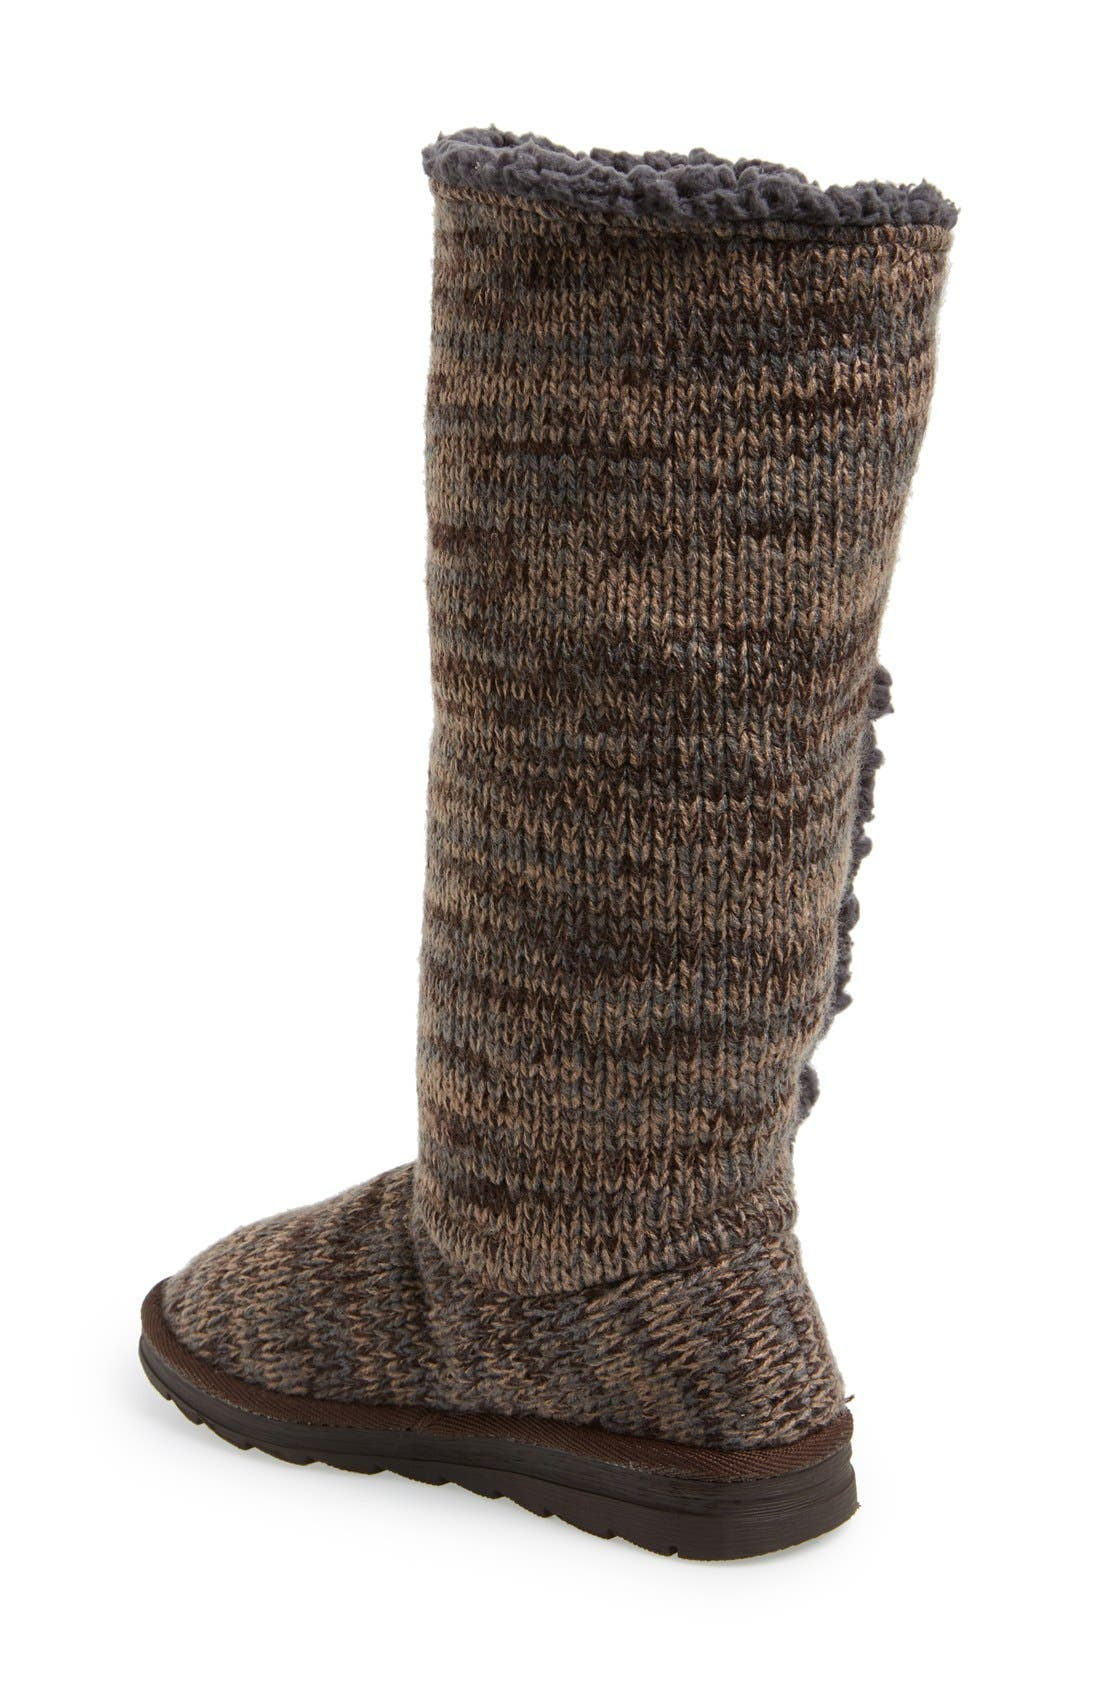 Alternate Image 2  - MUK LUKS 'Malena' Button Up Crochet Boot (Women)